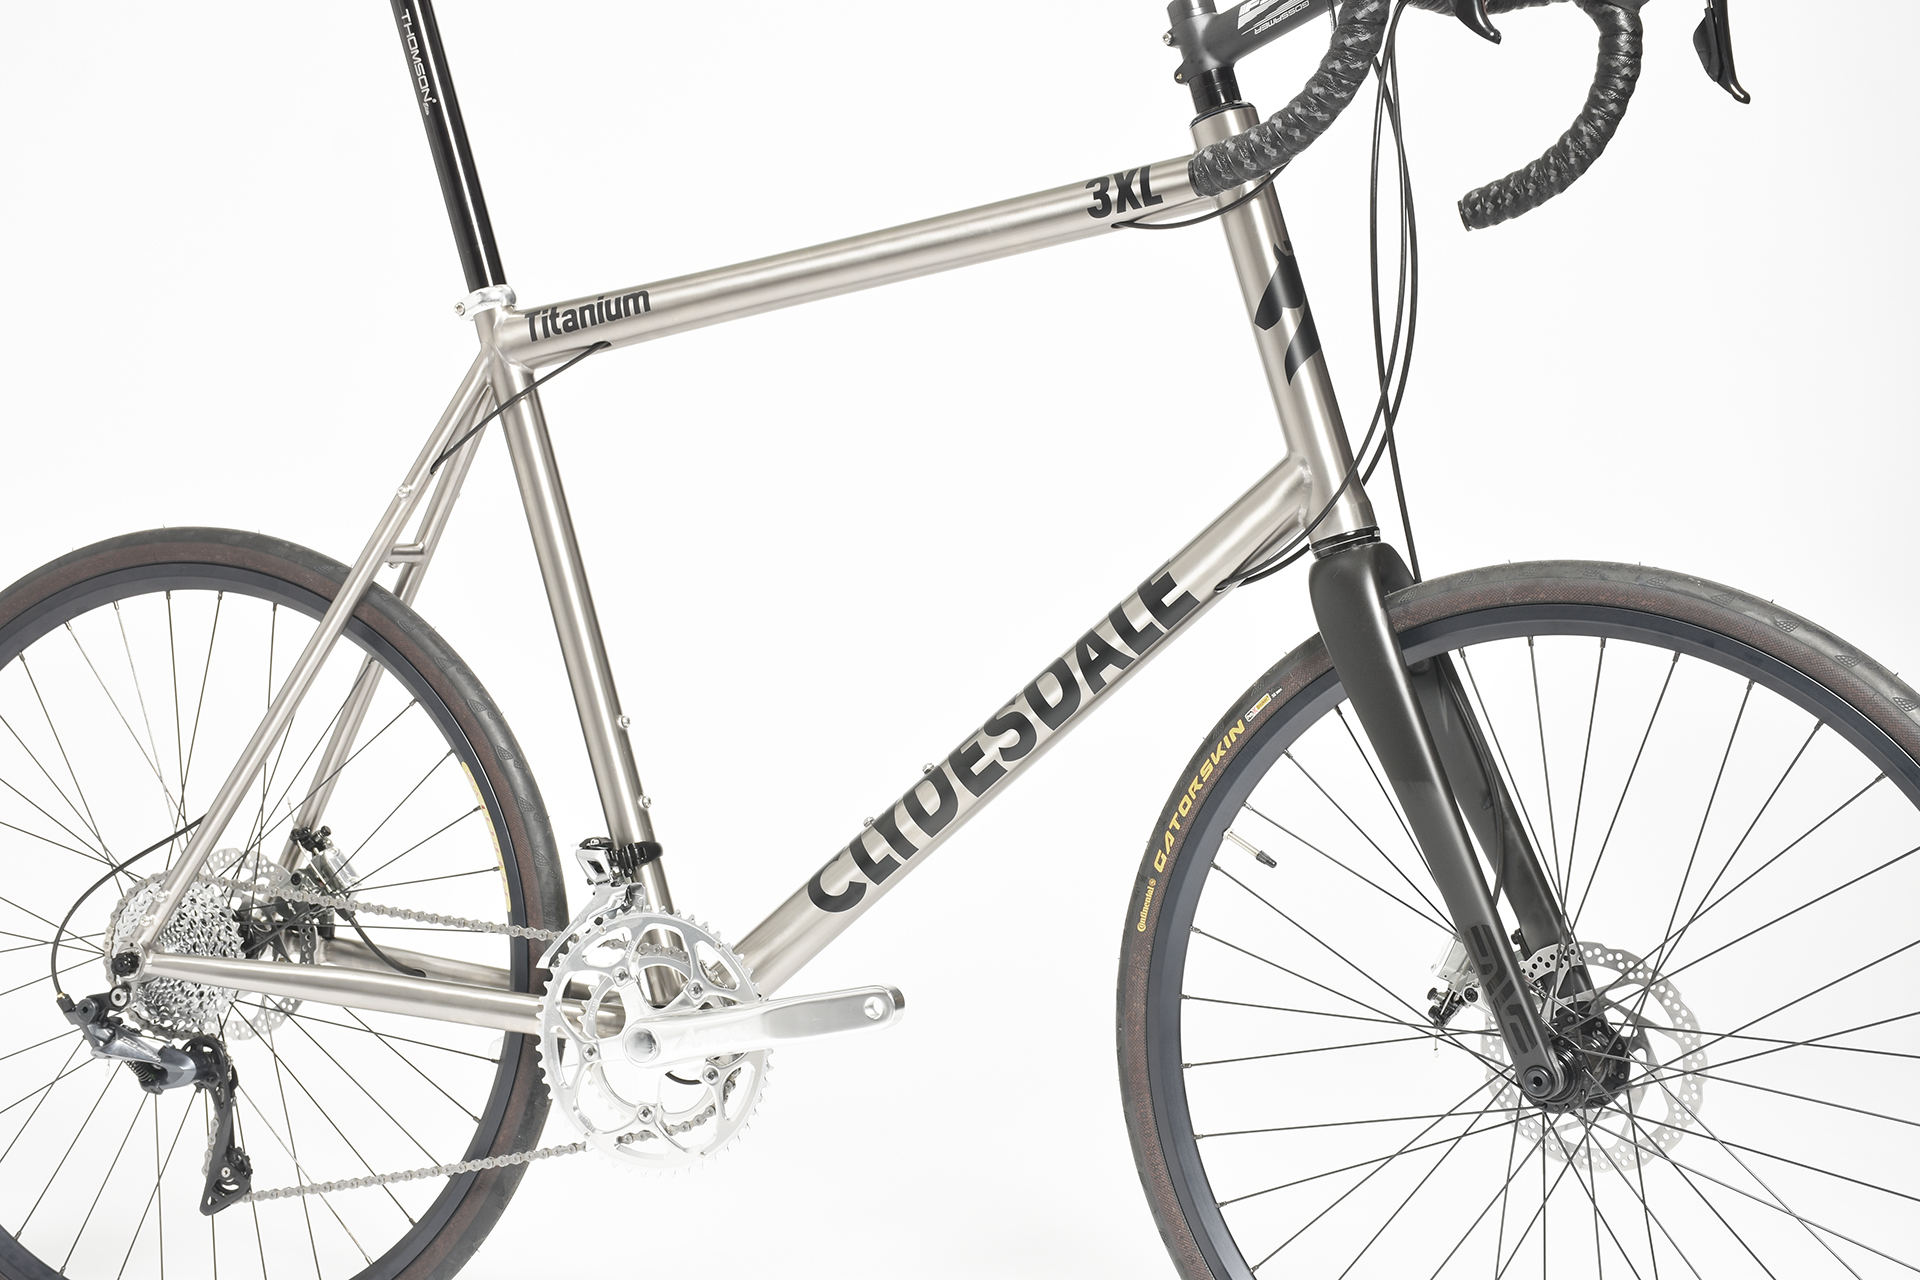 XXL Bike :: Clydesdale bike for tall guys designed by